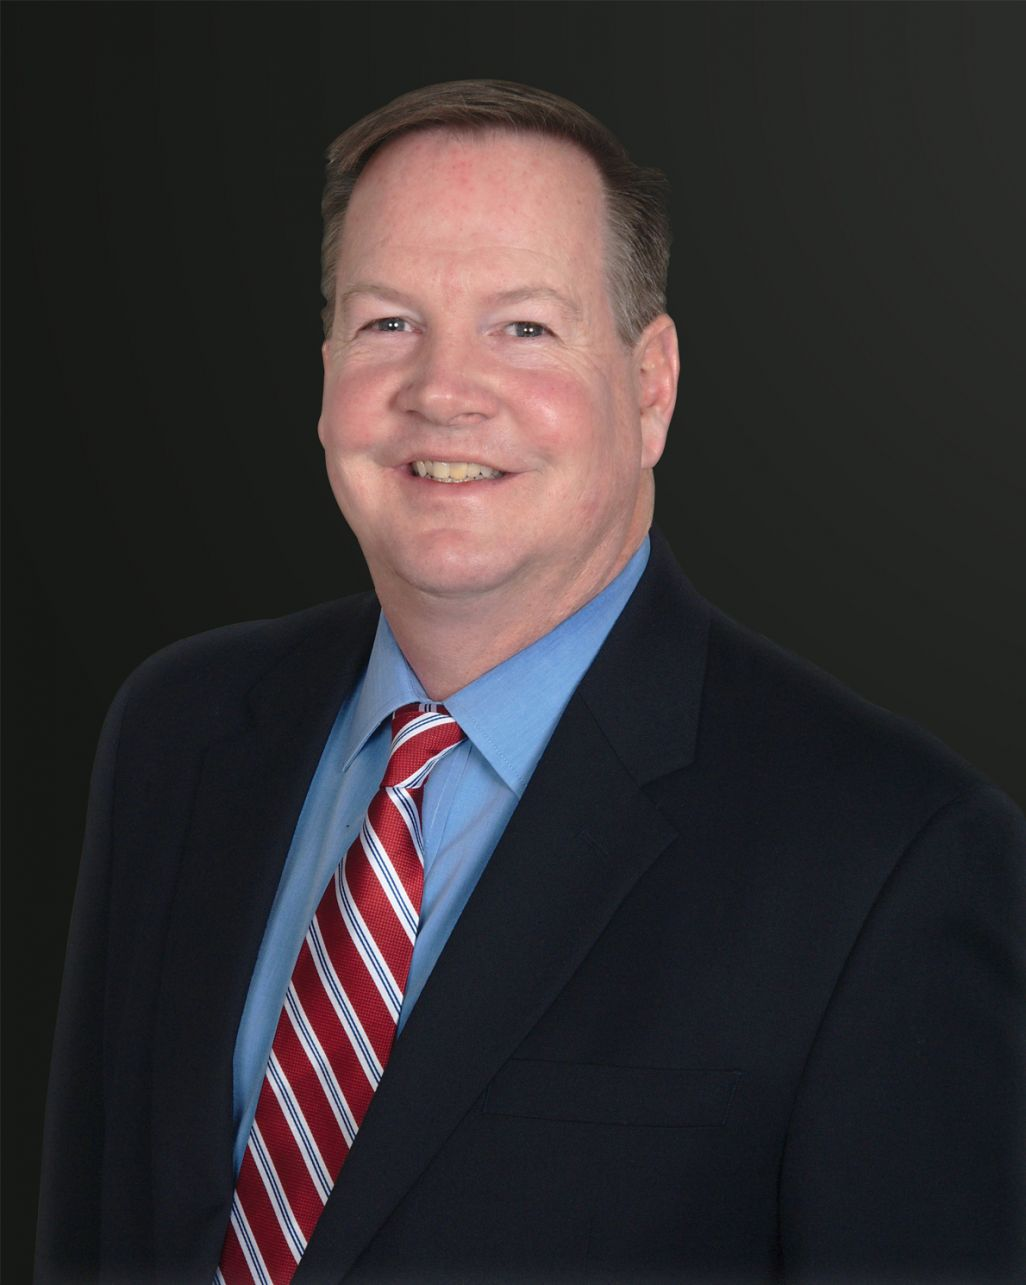 Jim Donnelly, Managing Director, Centerstone D.C.